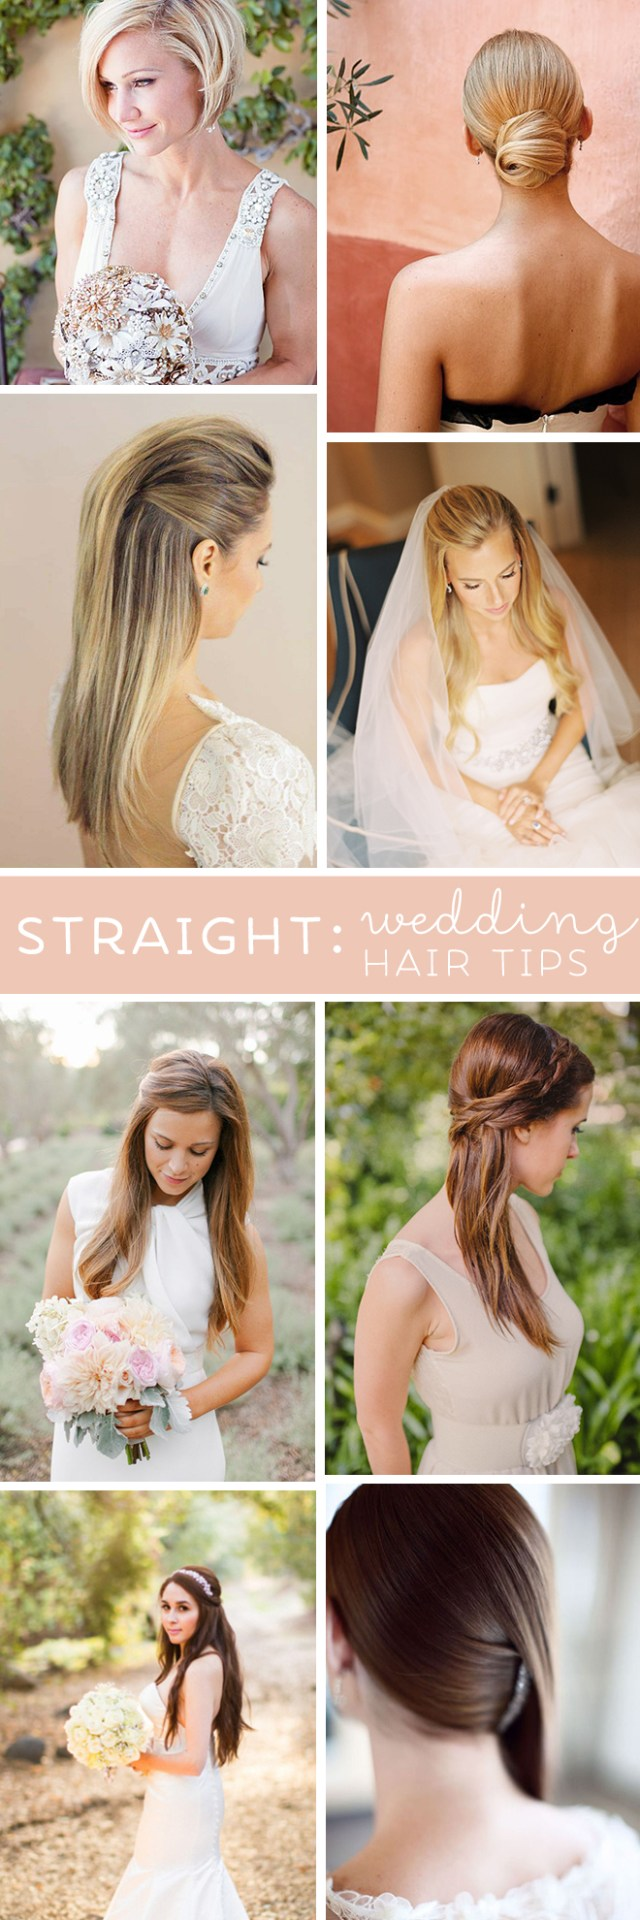 best wedding hair tips for wearing straight styles!